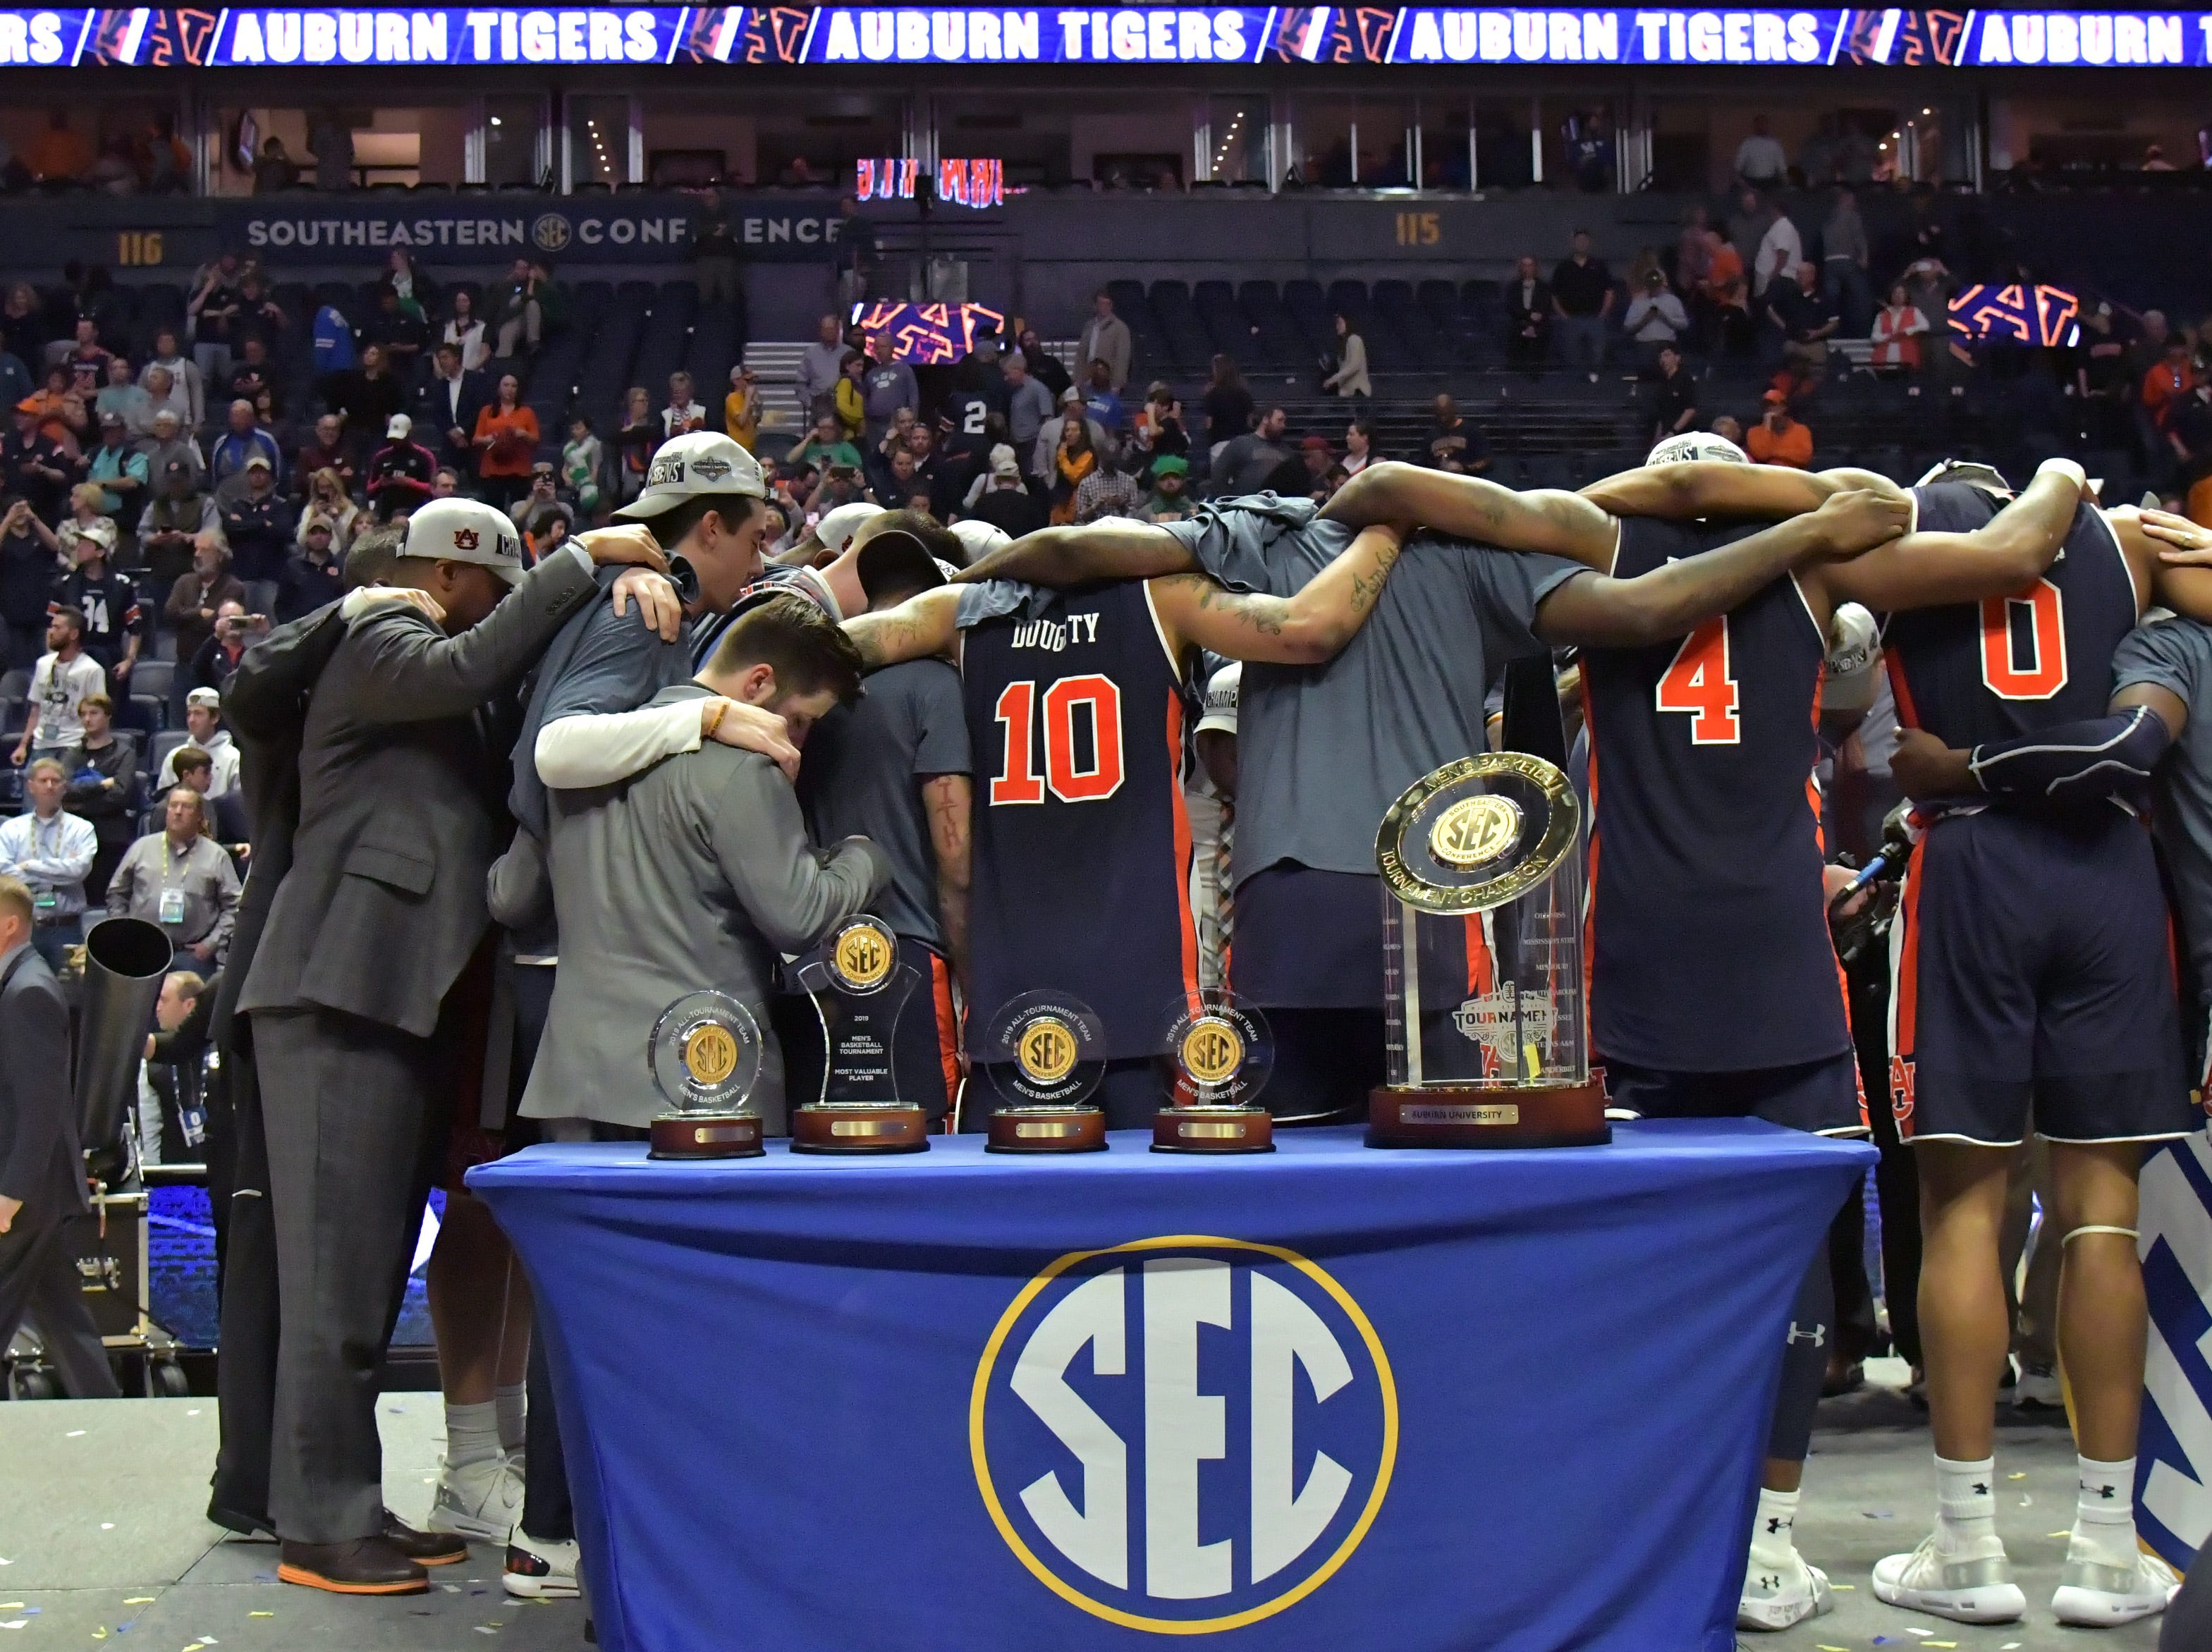 Mar 17, 2019; Nashville, TN, USA; Auburn Tigers teammates gather together prior to the trophy presentation following the championship game between the Tennessee Volunteers and the Auburn Tigers  in the SEC conference tournament at Bridgestone Arena. Auburn won 84-64. Mandatory Credit: Jim Brown-USA TODAY Sports